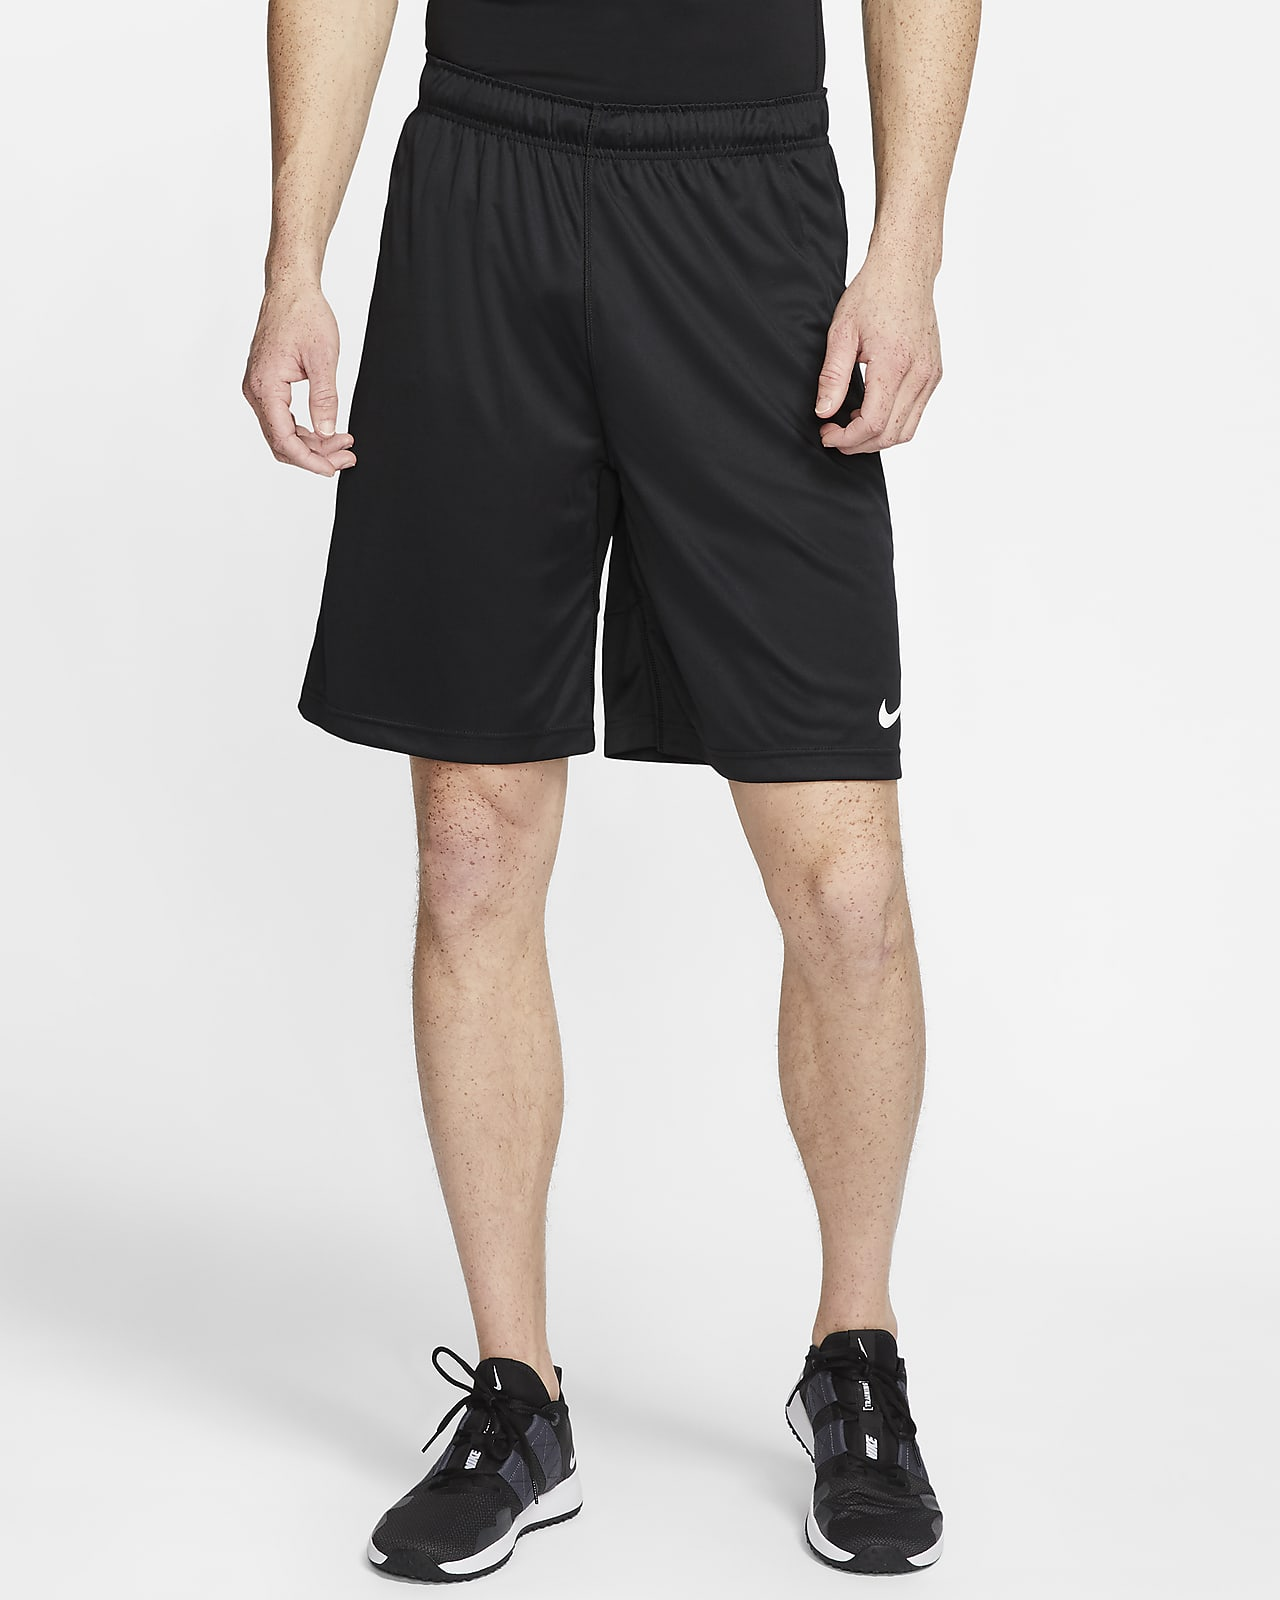 Nike Dri-FIT Men's Football Shorts